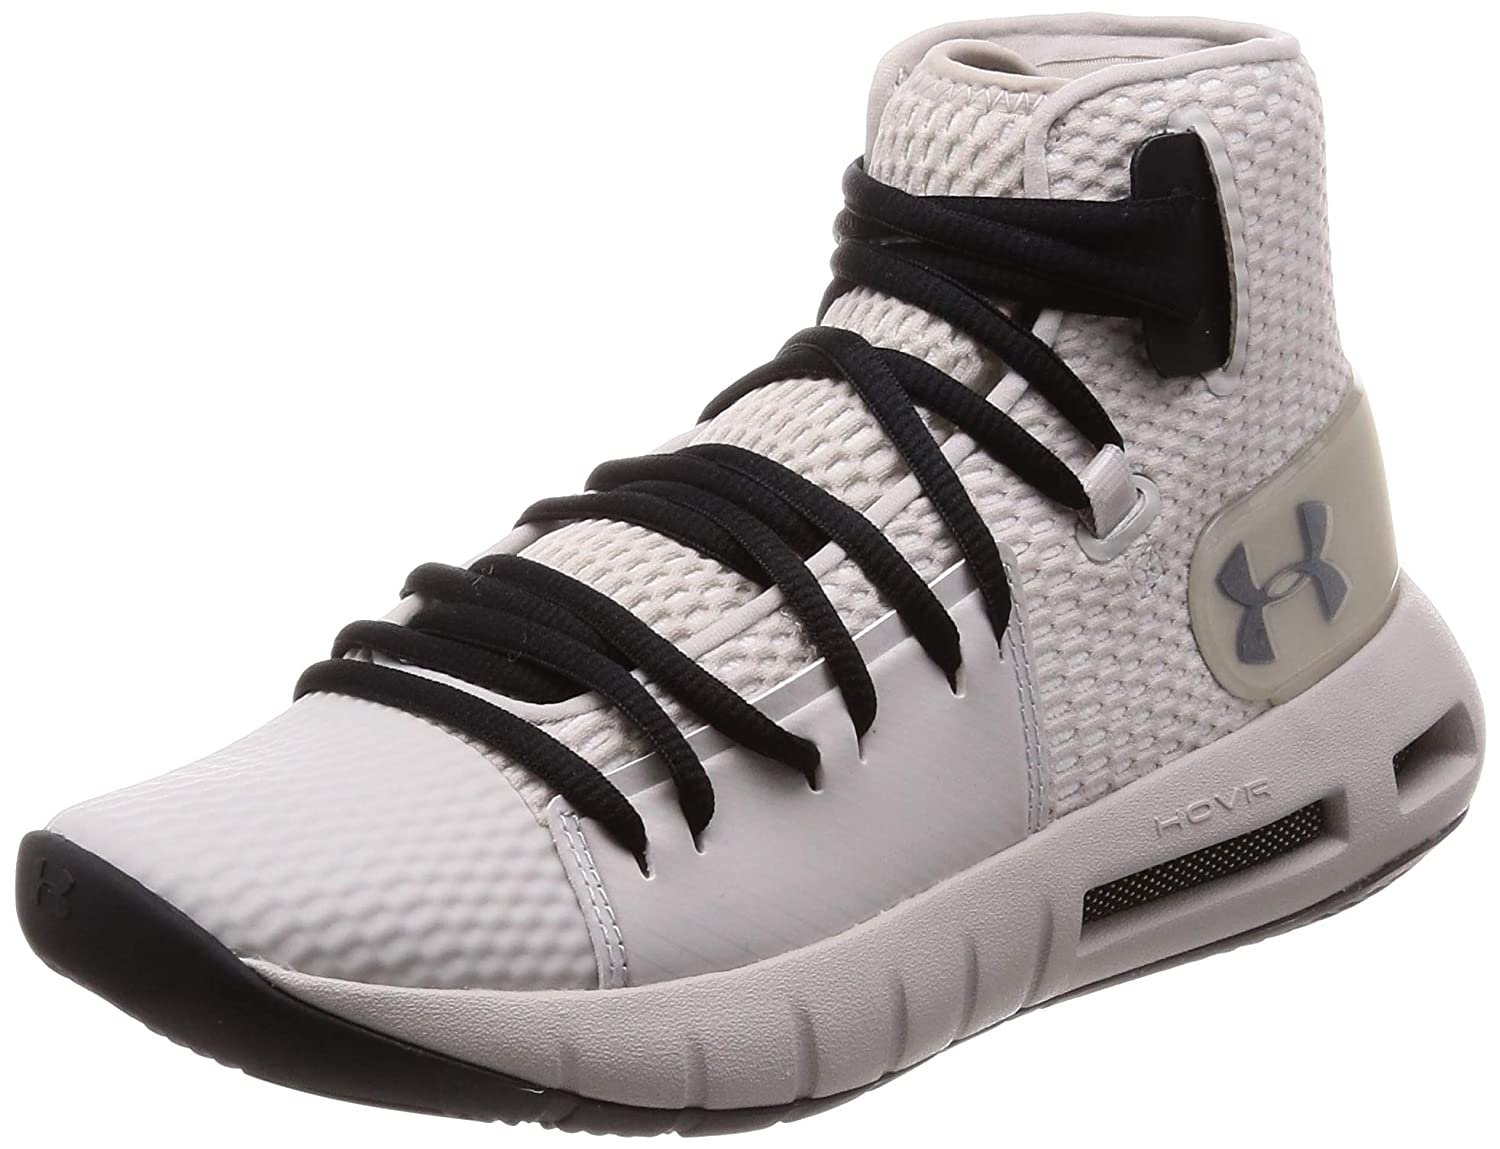 white under armour basketball shoes